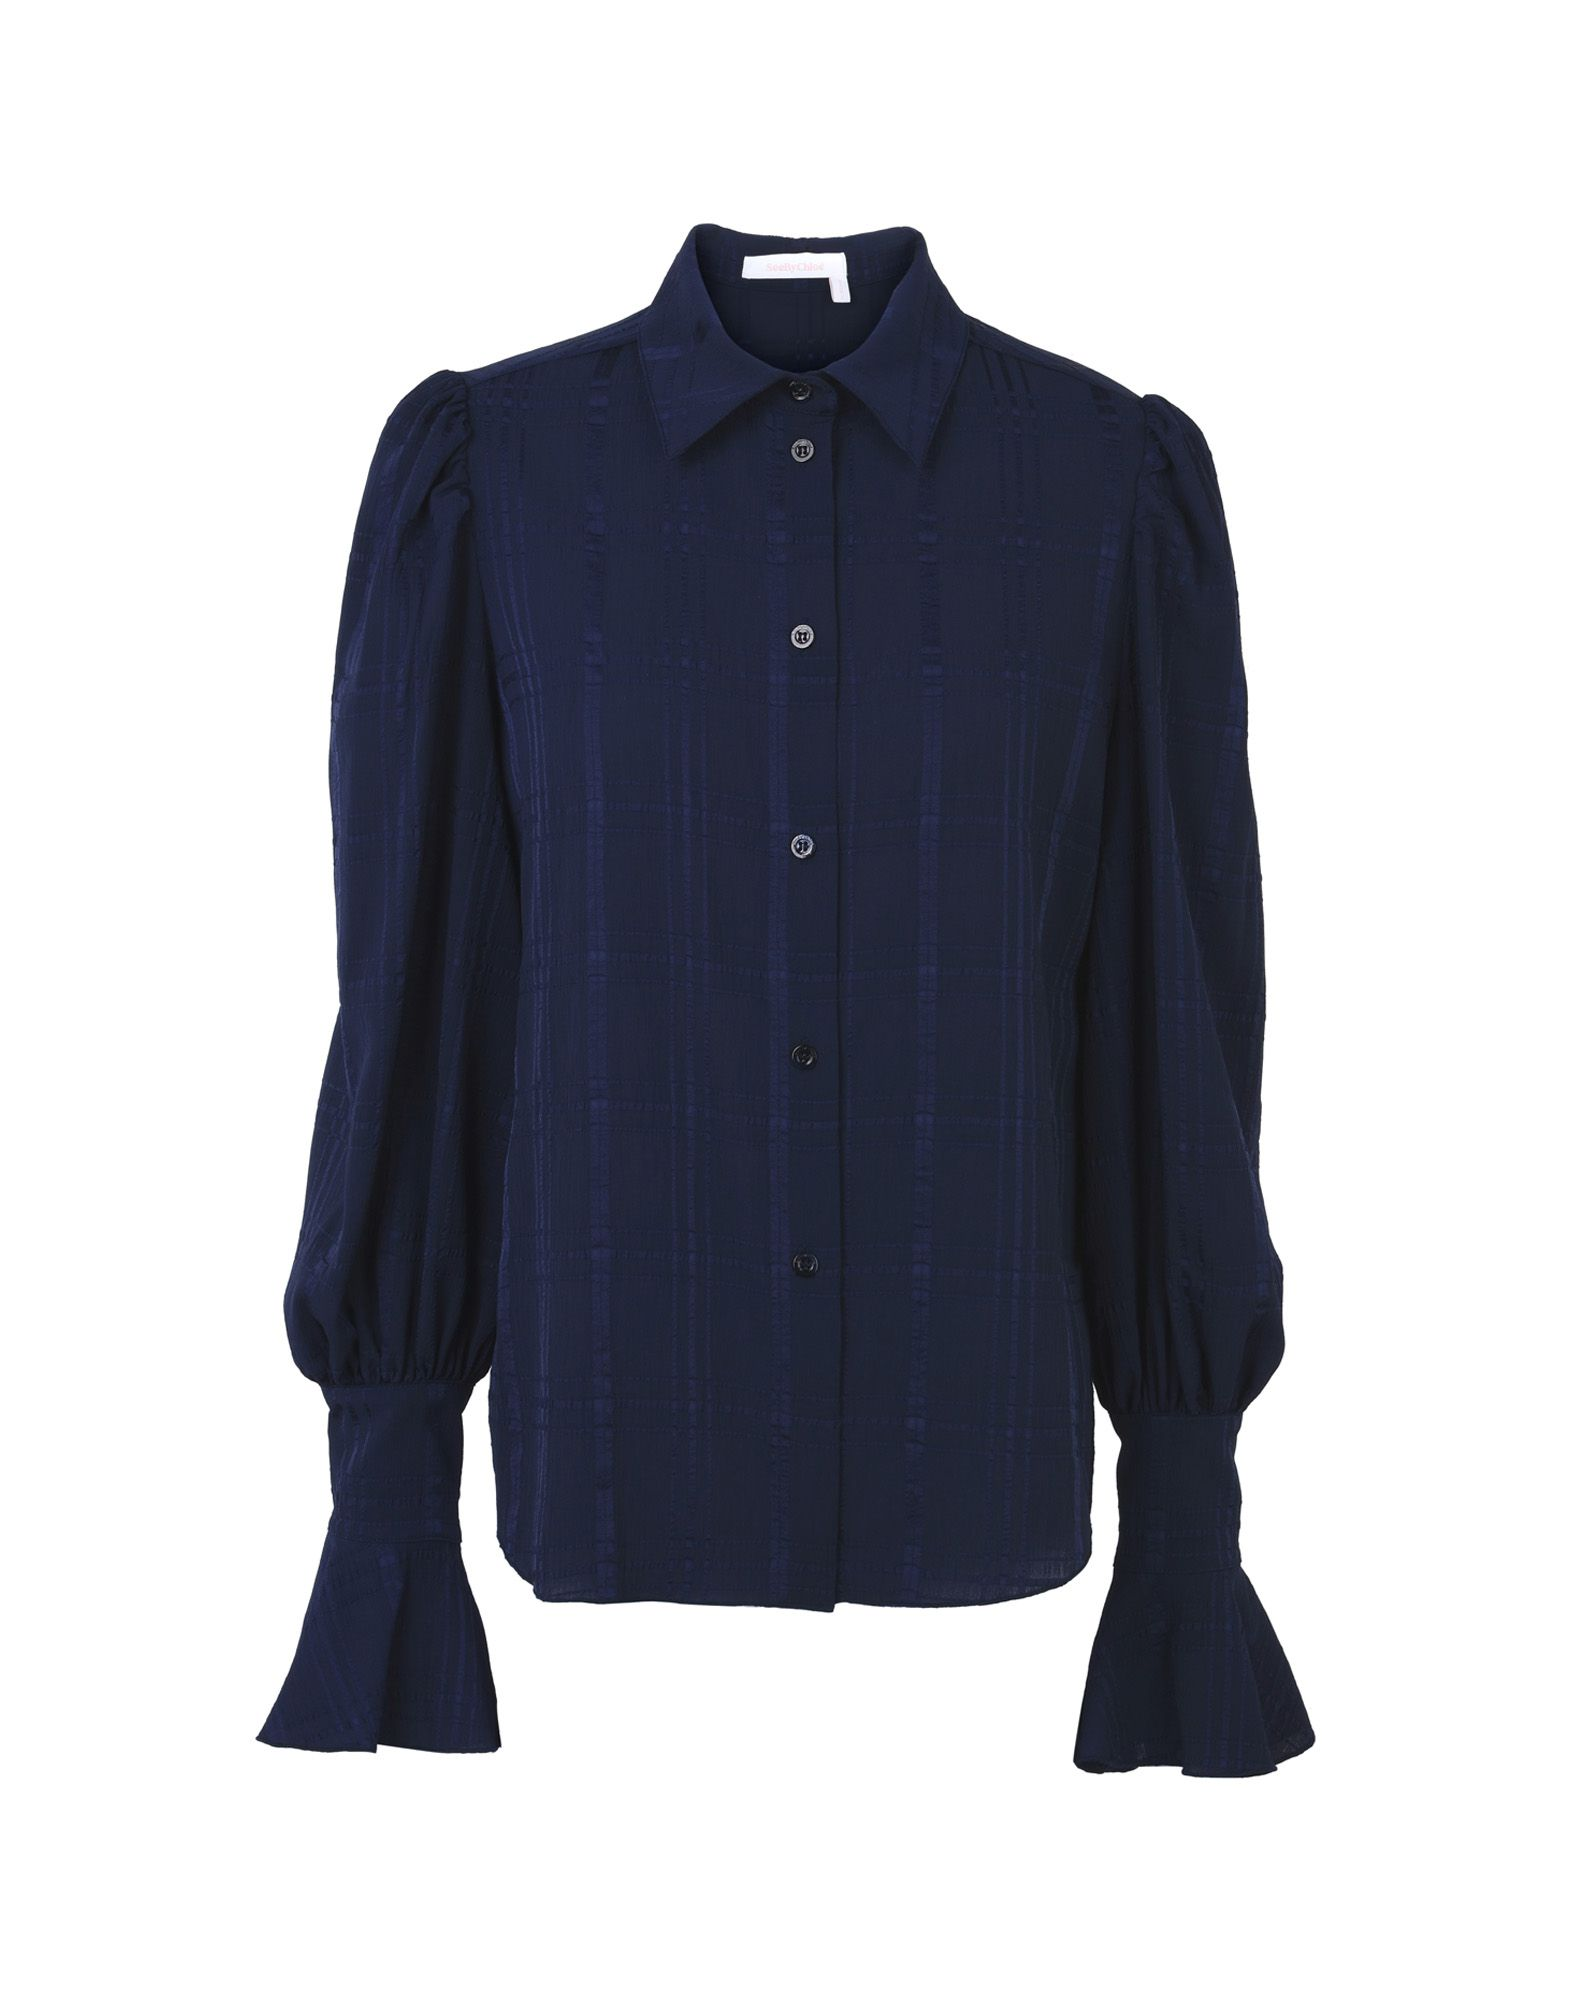 Solid Color Shirts & Blouses, Dark Blue